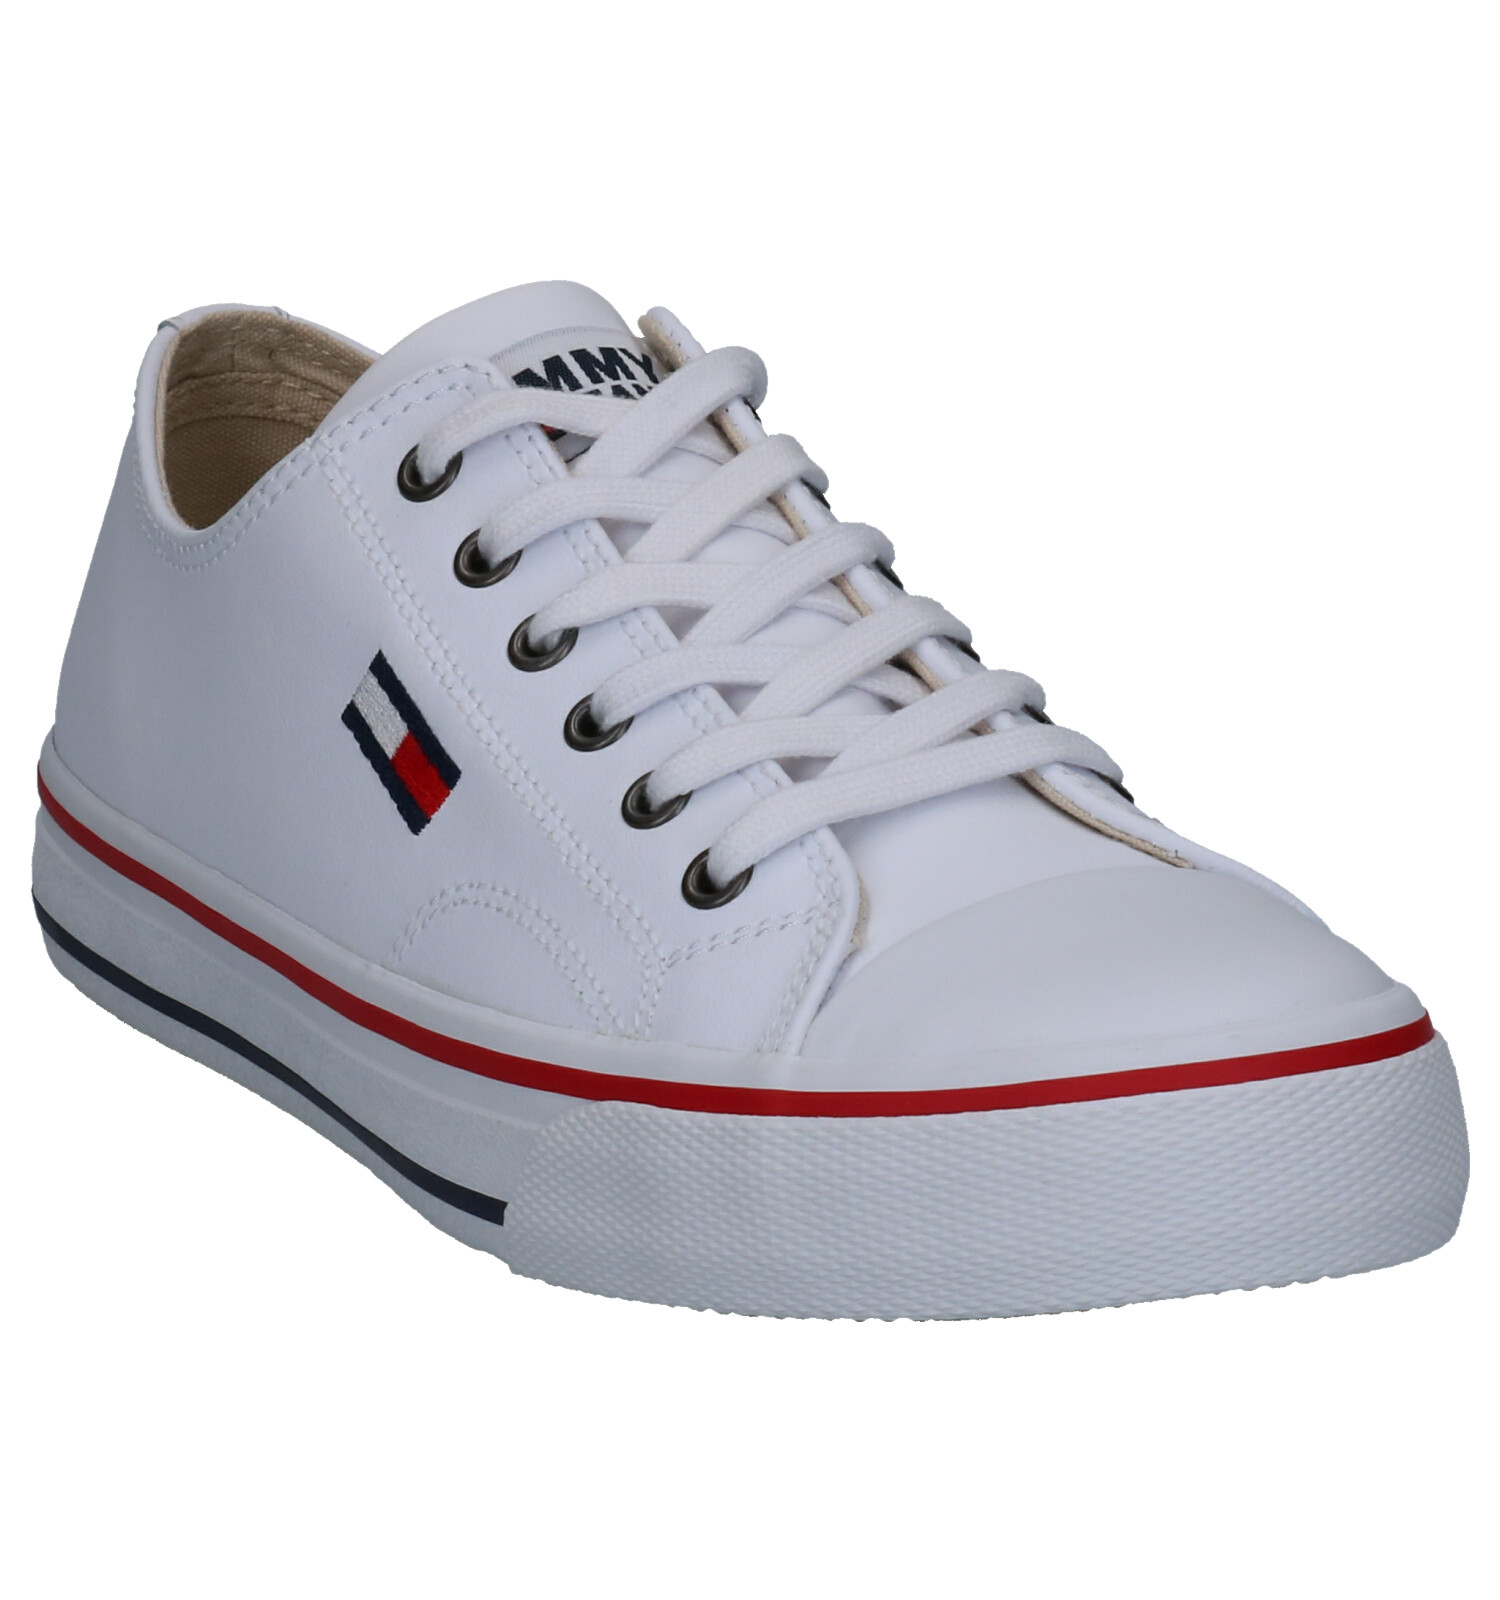 Tommy Hilfiger Leather City Witte Sneakers | SCHOENENTORFS